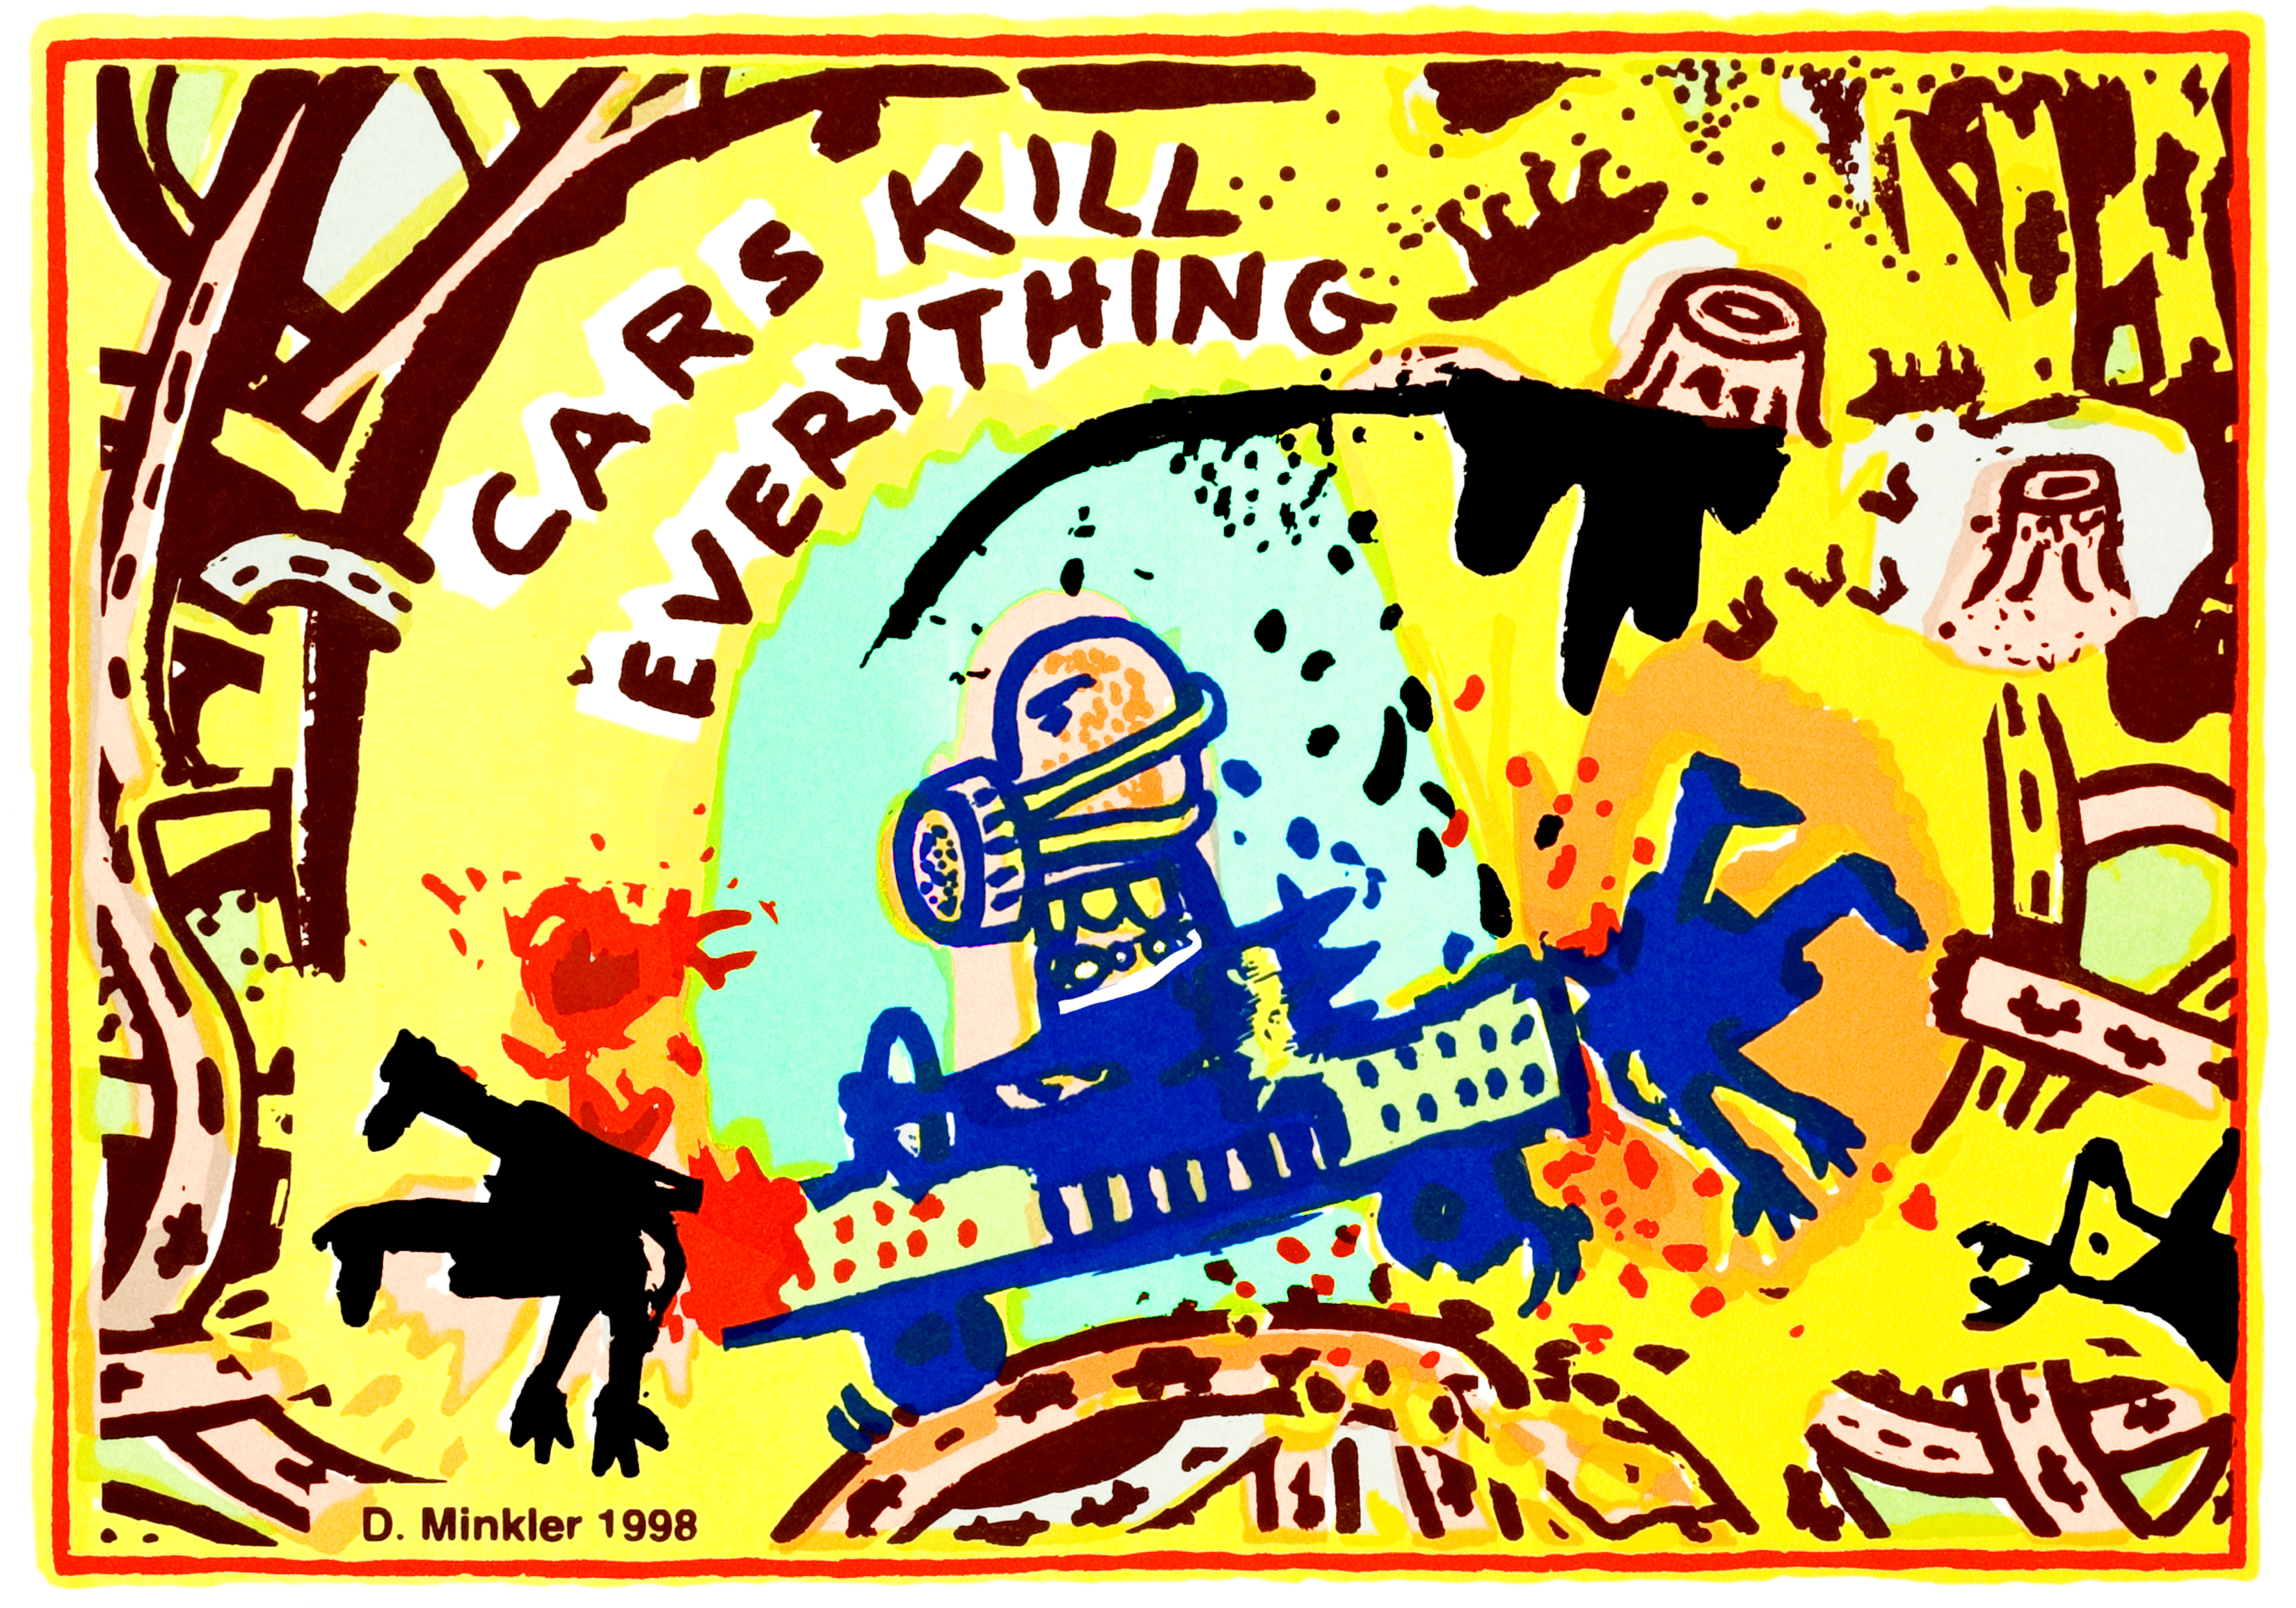 Cars Kill Everything